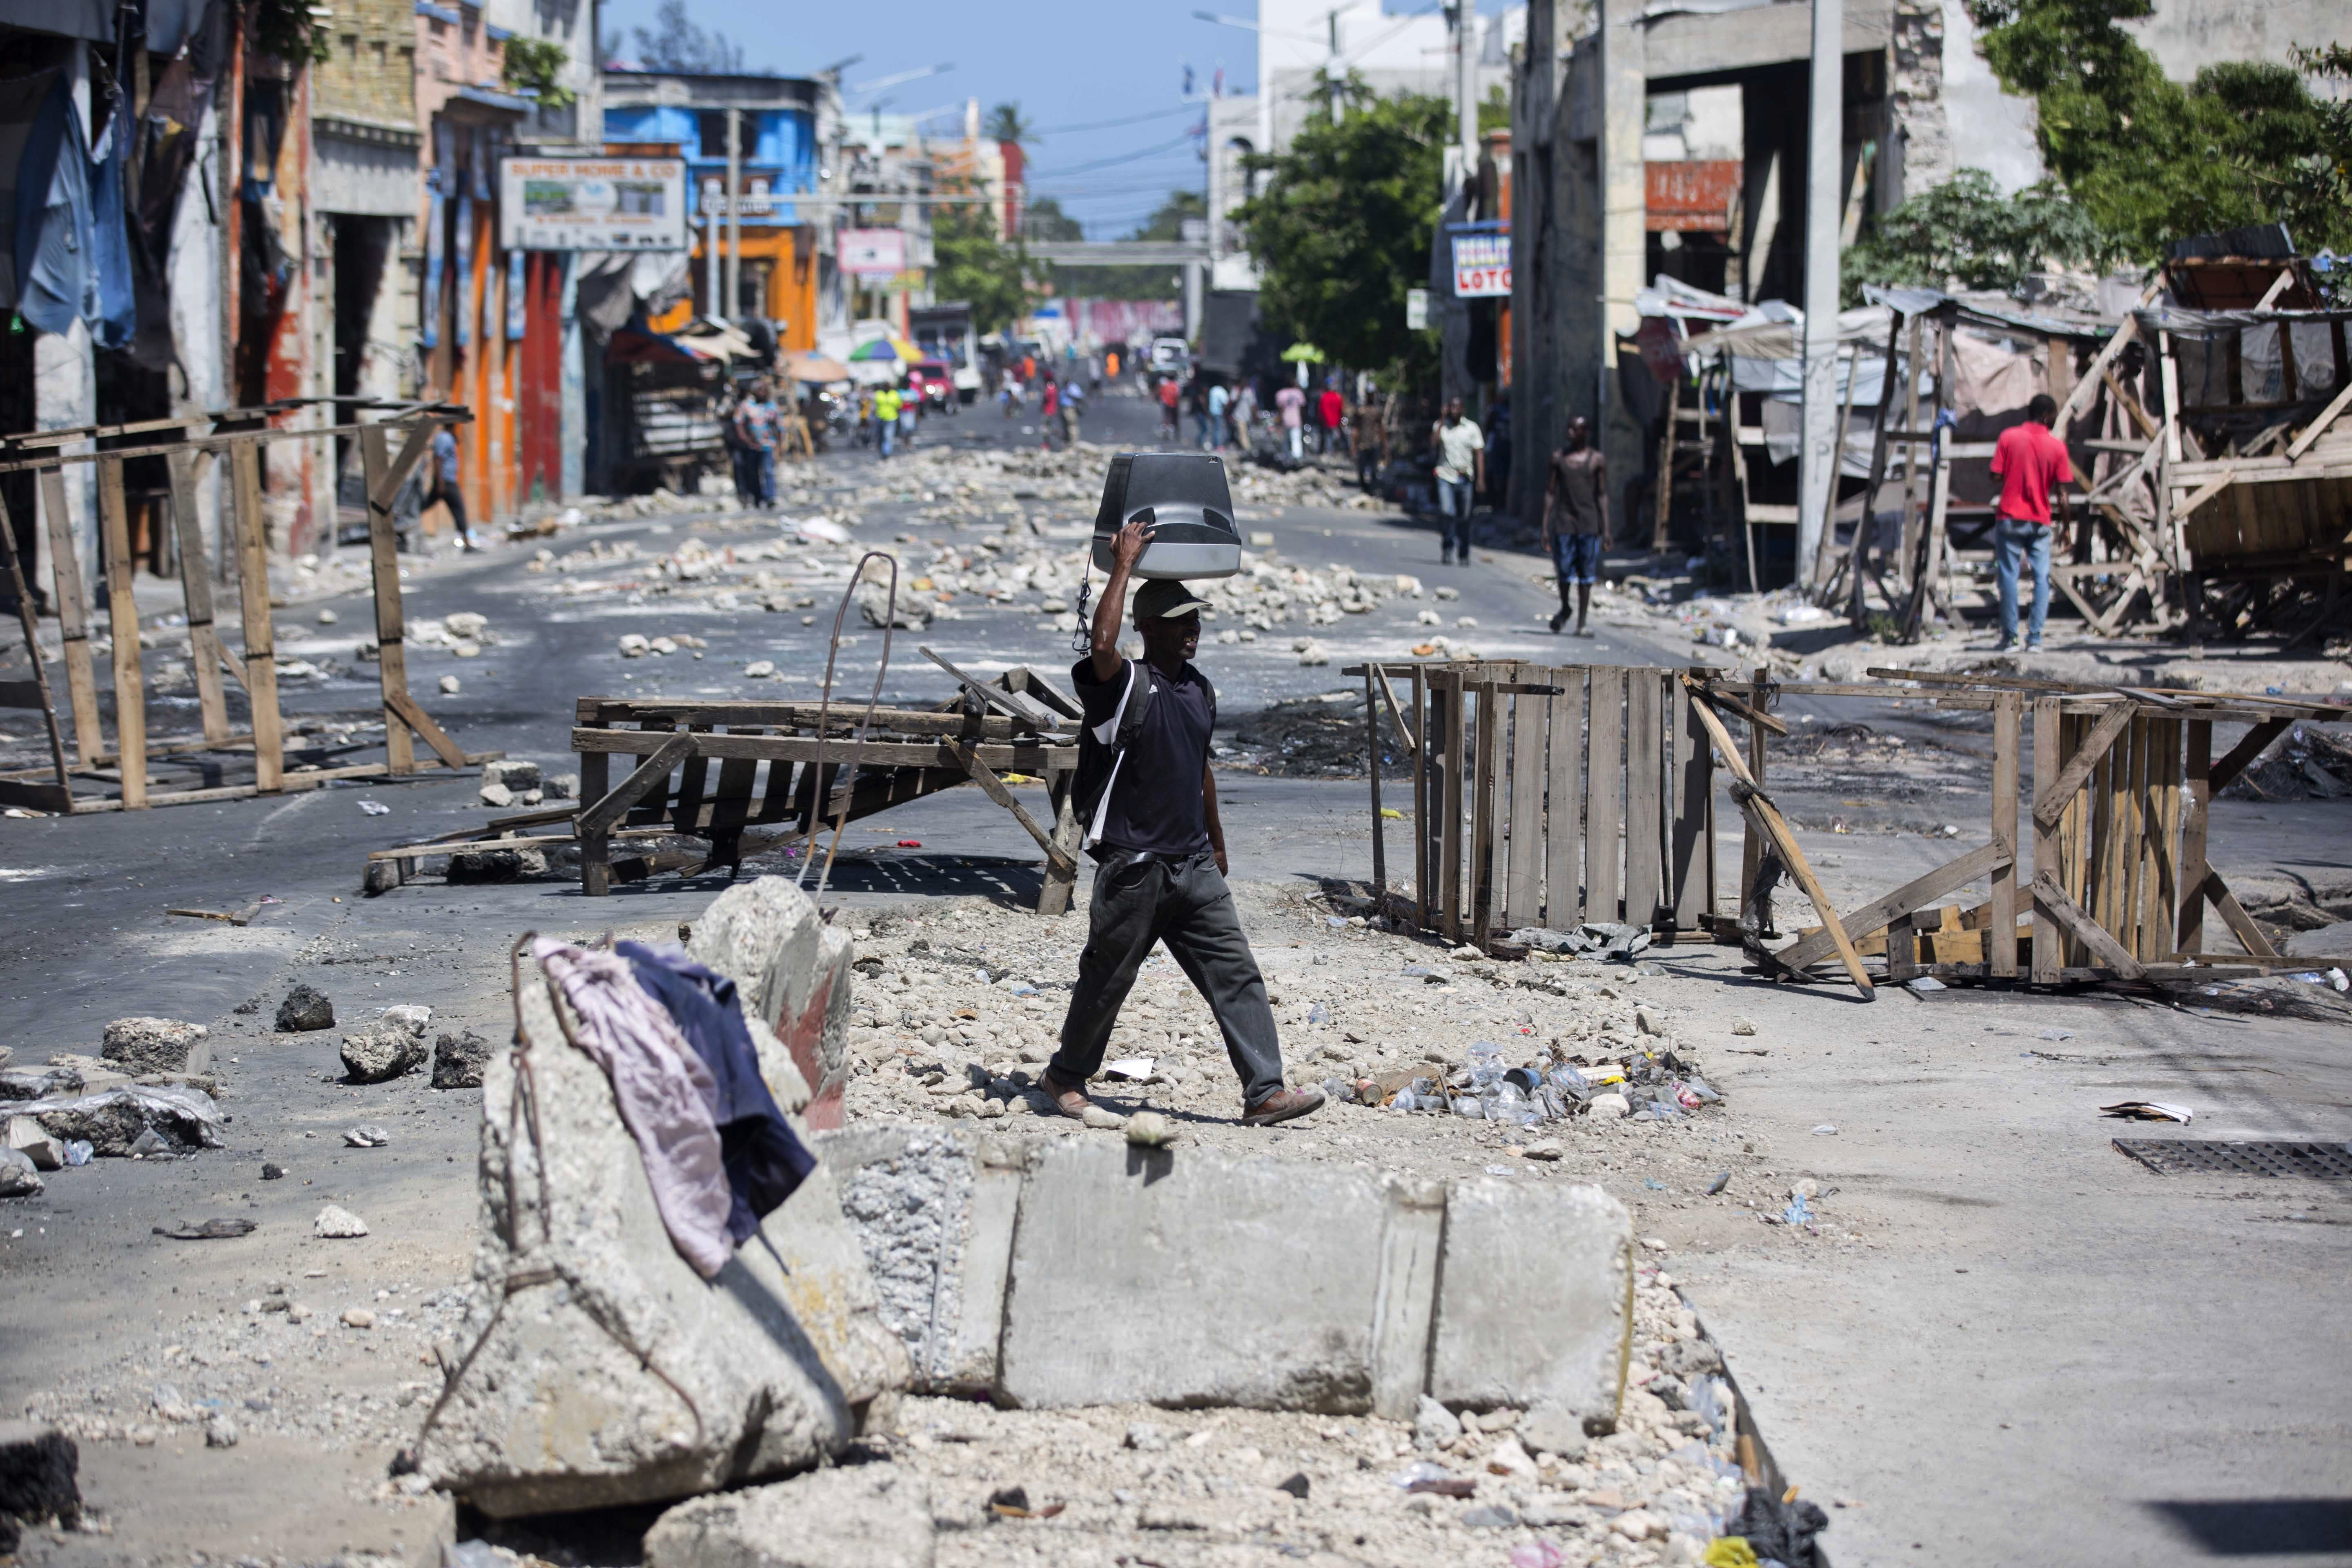 <p>A man balances a TV monitor on his head as he walks through roadblocks set up by anti-government protesters during a general strike in Port-au-Prince, Haiti, Monday, July 9, 2018. (Photo: Dieu Nalio Chery/AP) </p>